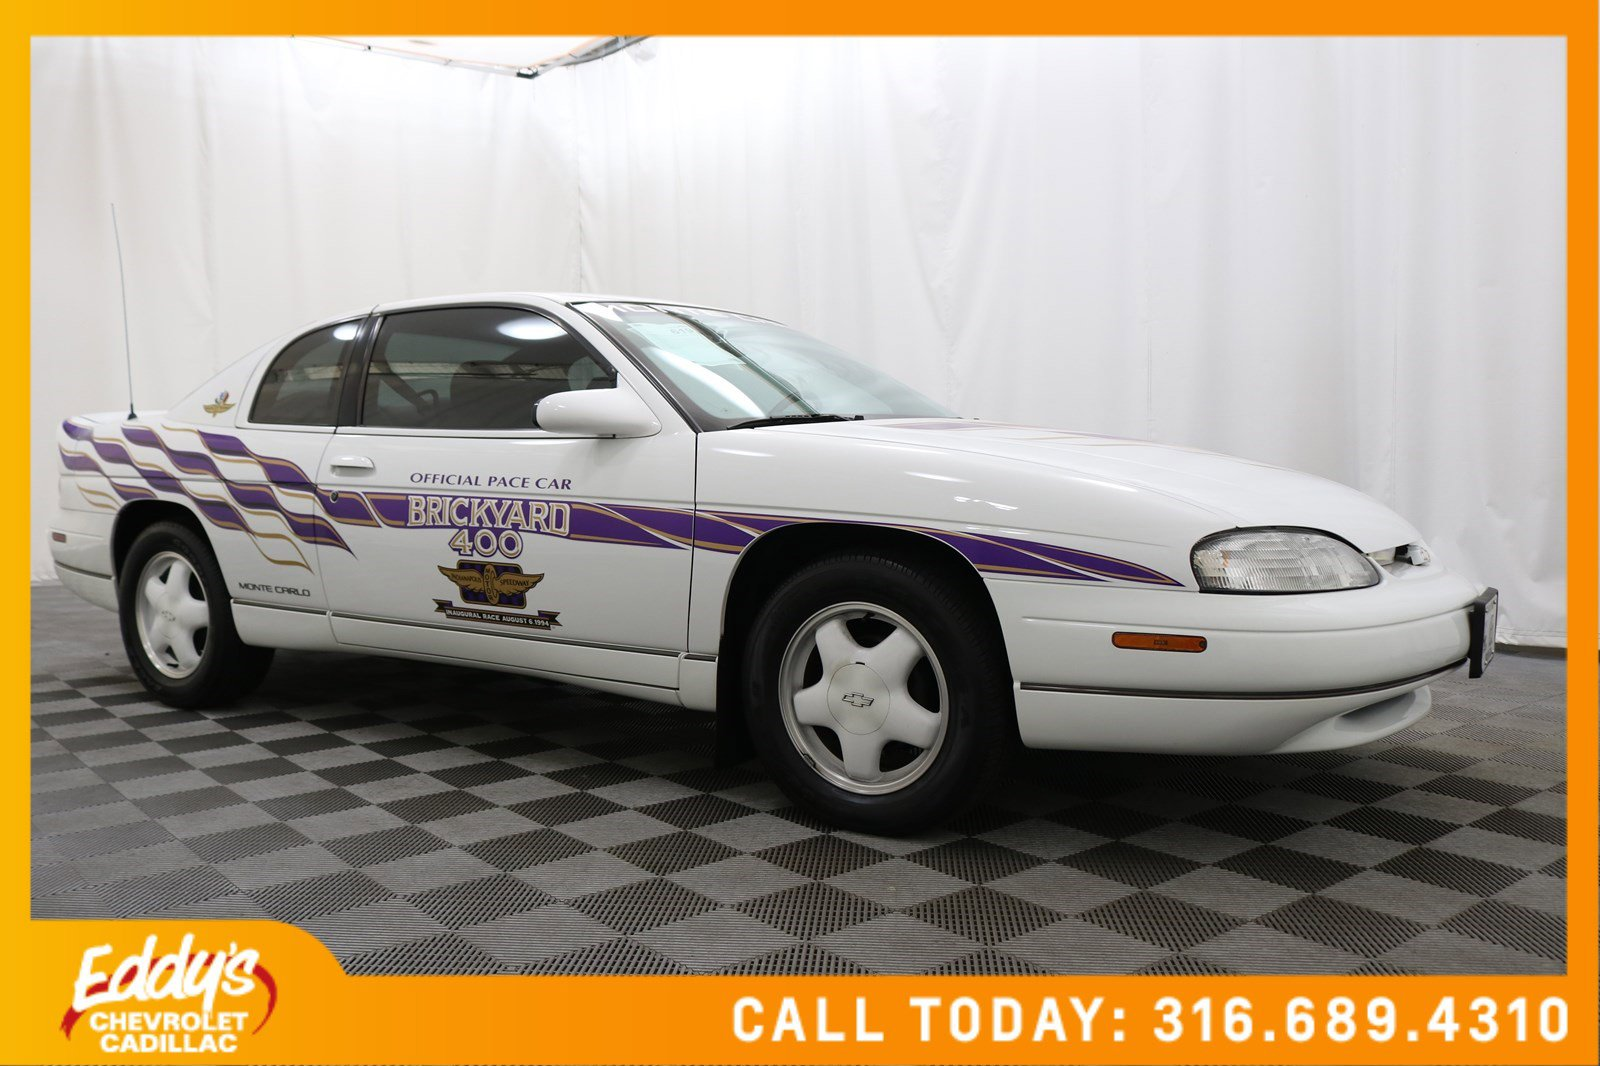 pre owned 1995 chevrolet monte carlo z34 2dr coupe z34 in wichita p5049 eddy s chevrolet cadillac pre owned 1995 chevrolet monte carlo z34 2dr coupe z34